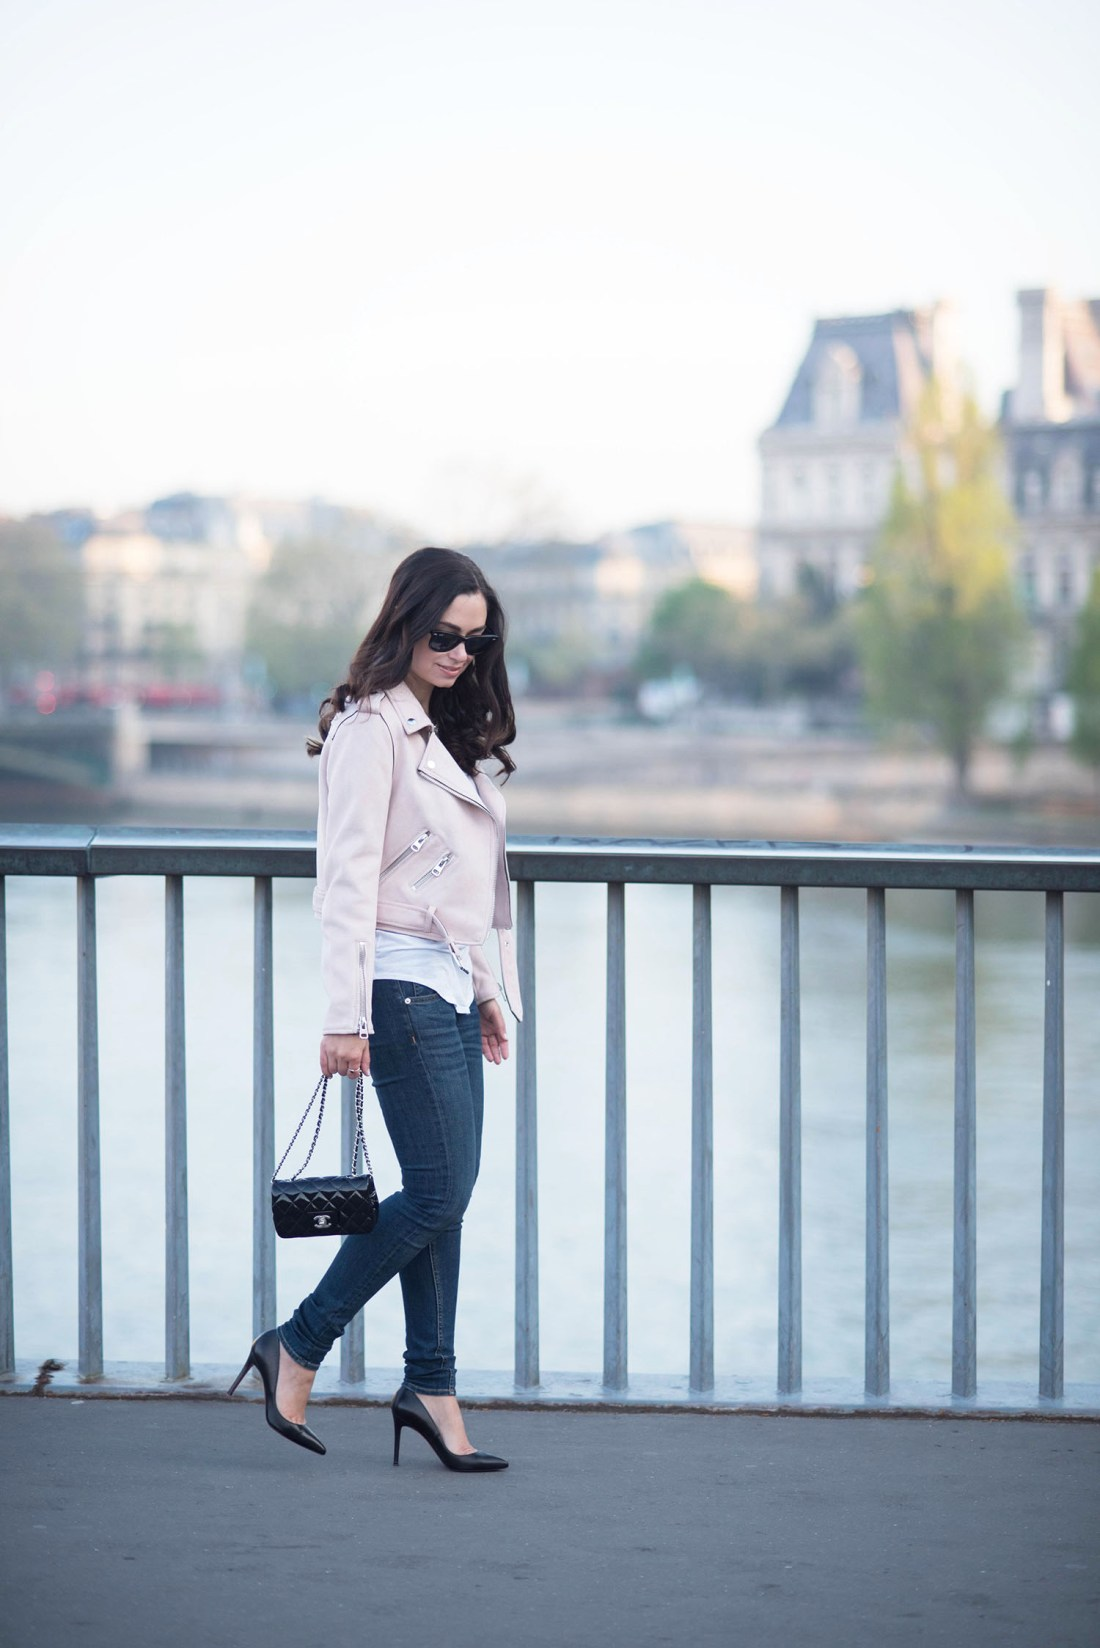 Fashion blogger Cee Fardoe of Coco & Vera walks in front of Hotel de Ville in Paris wearing a Zara pink moto jacket